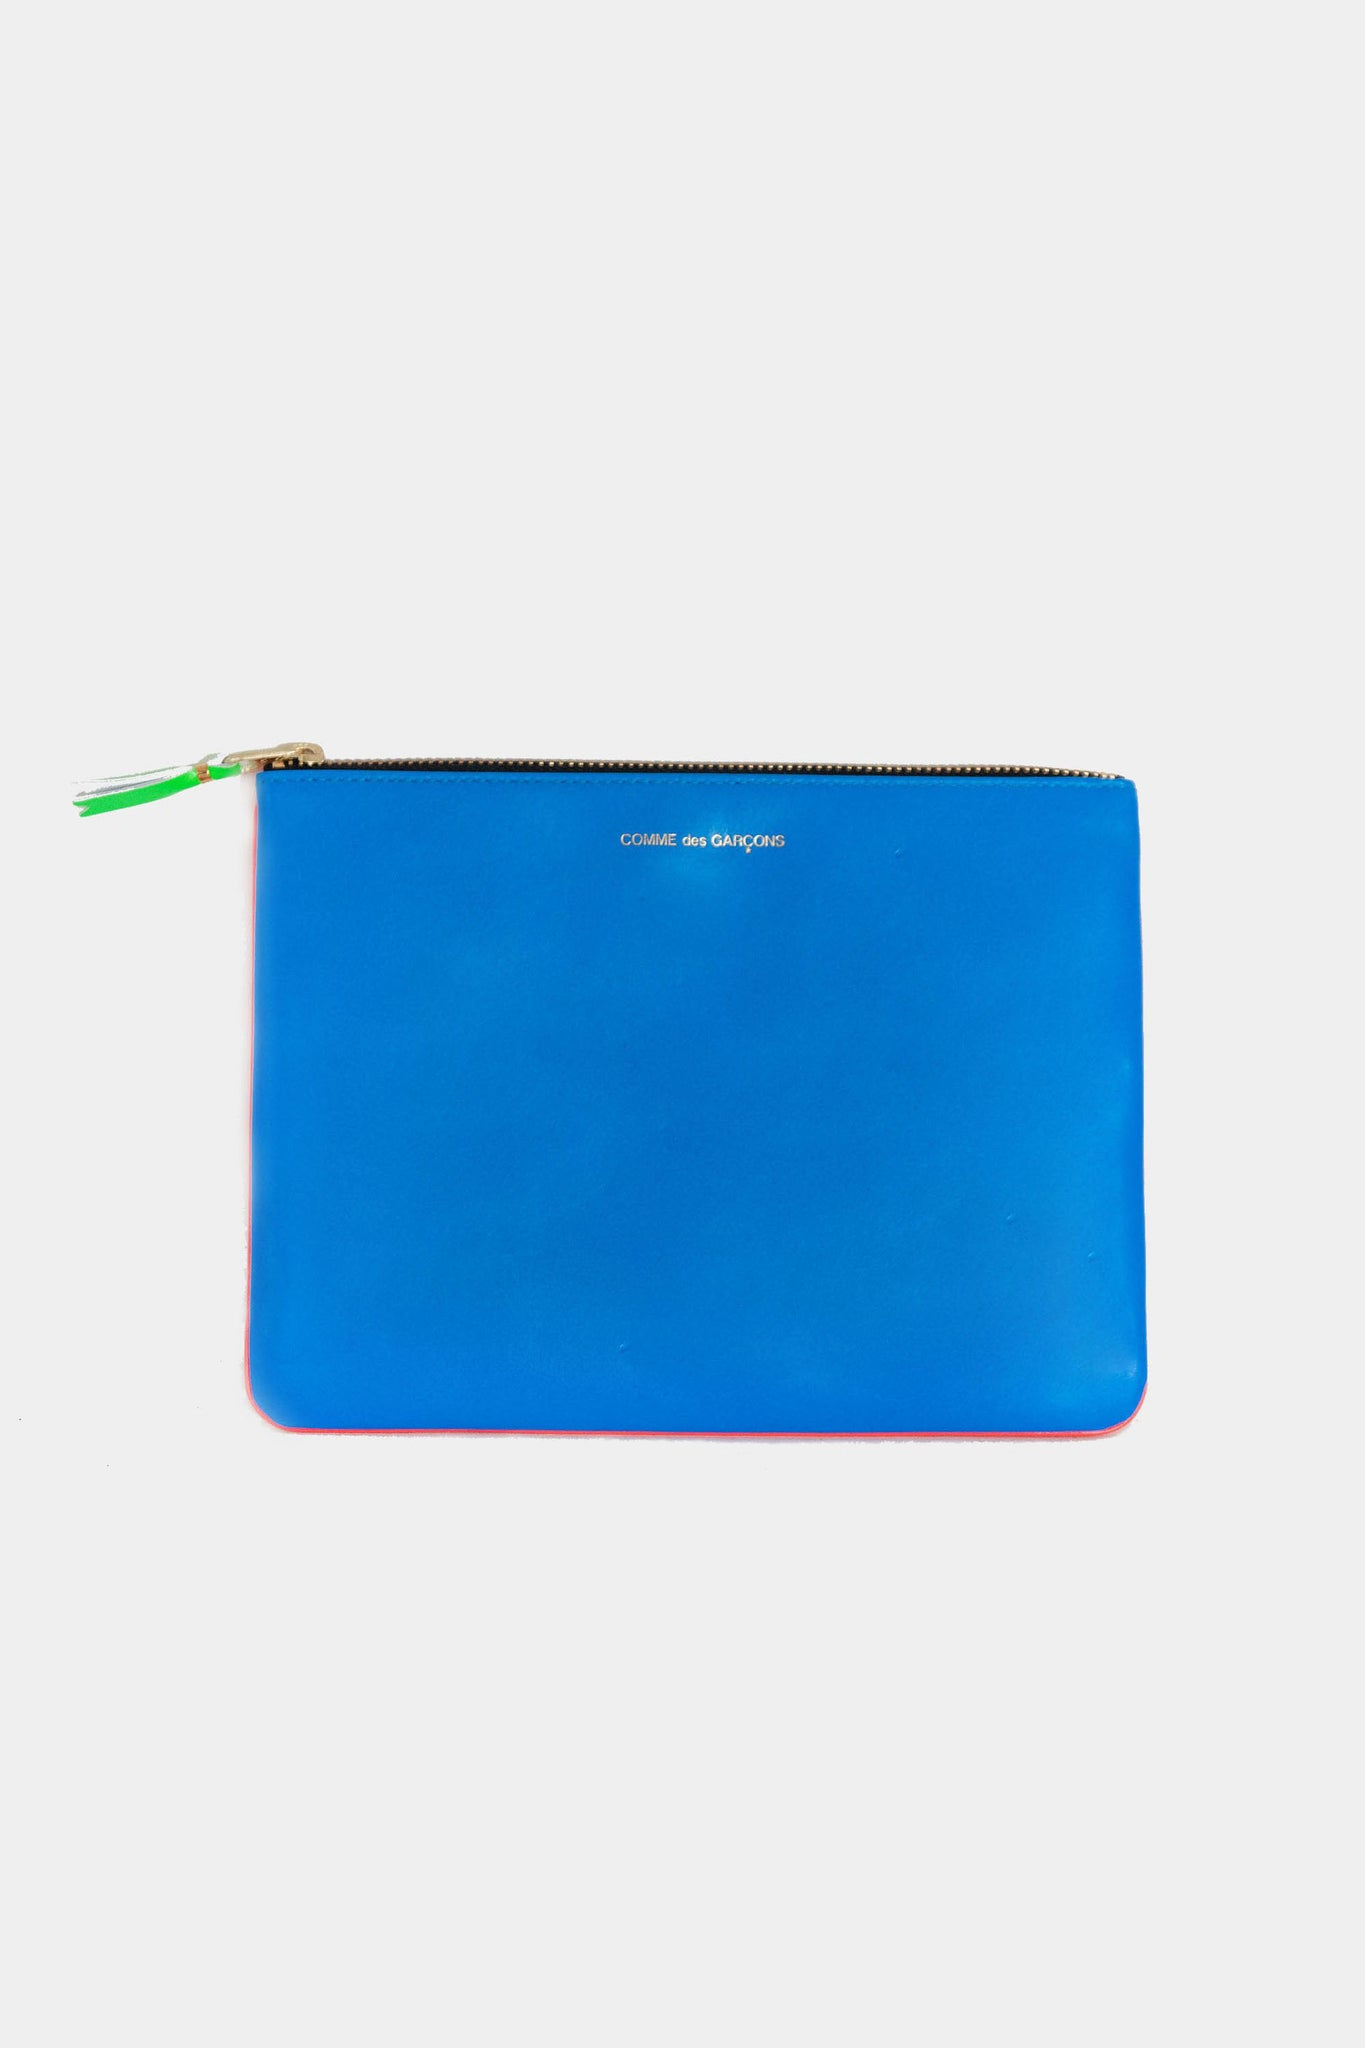 super fluo large pouch, orange and blue